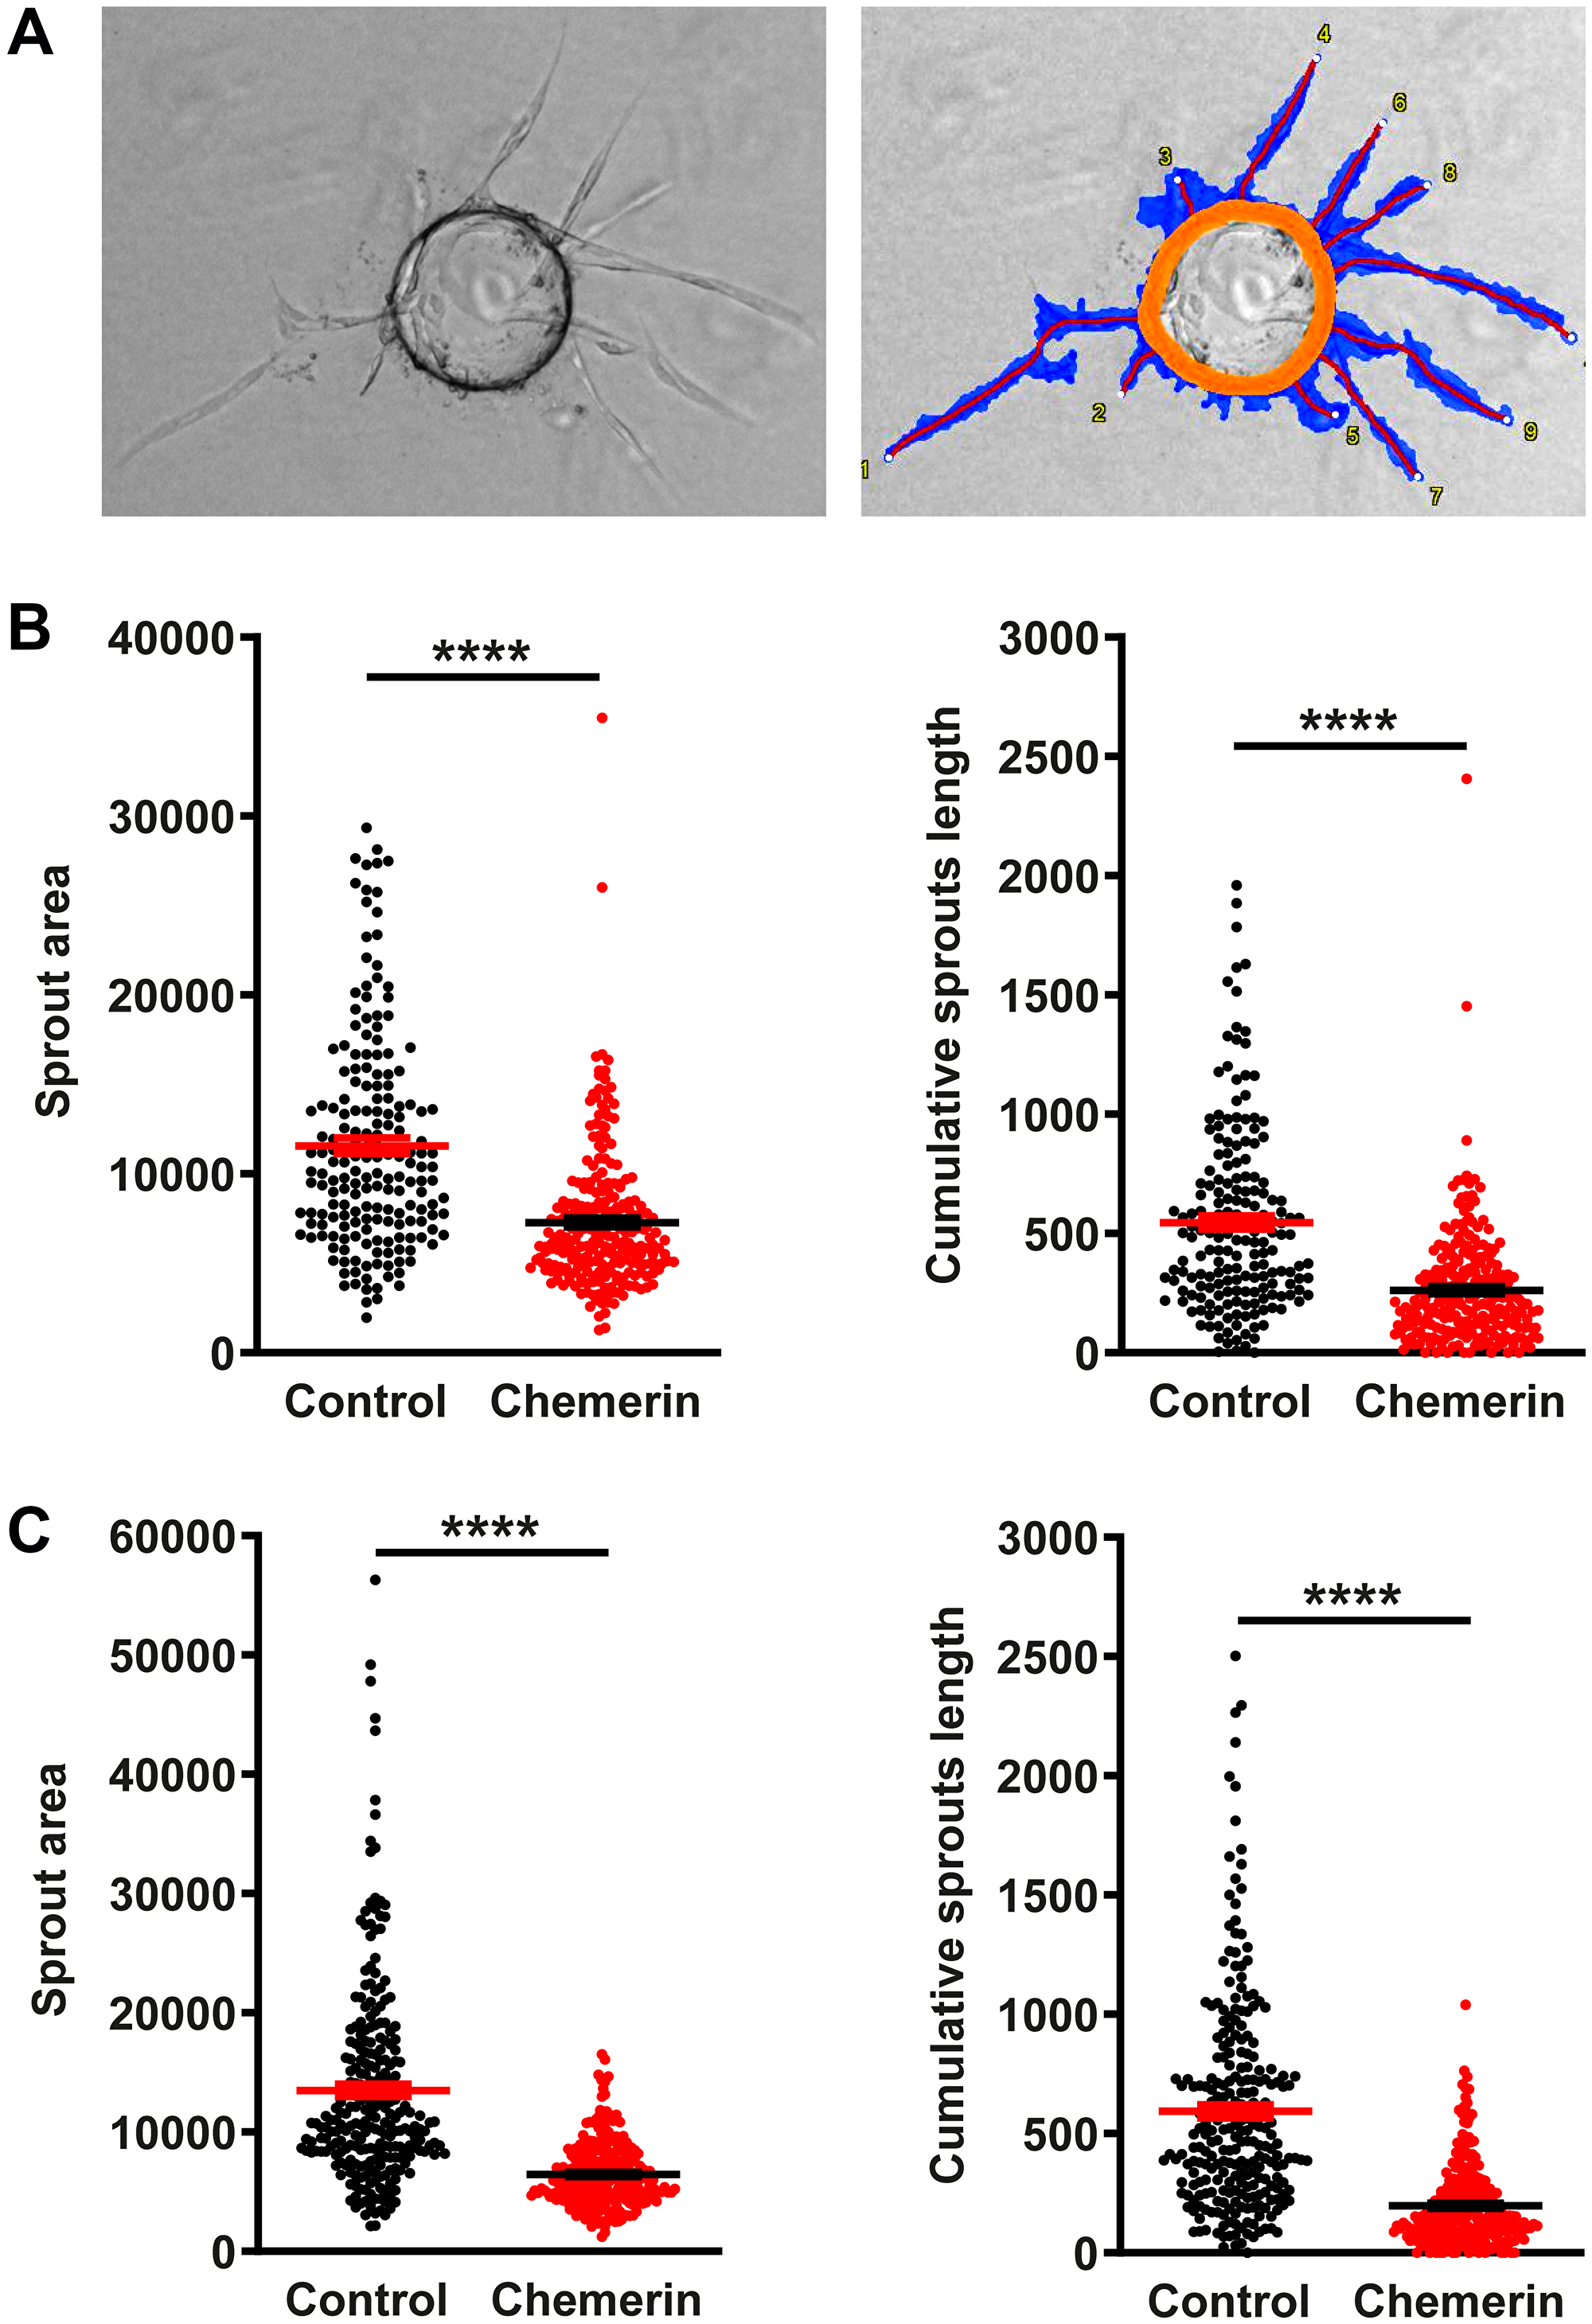 Chemerin inhibits angiogenesis in the bead sprouting assay.